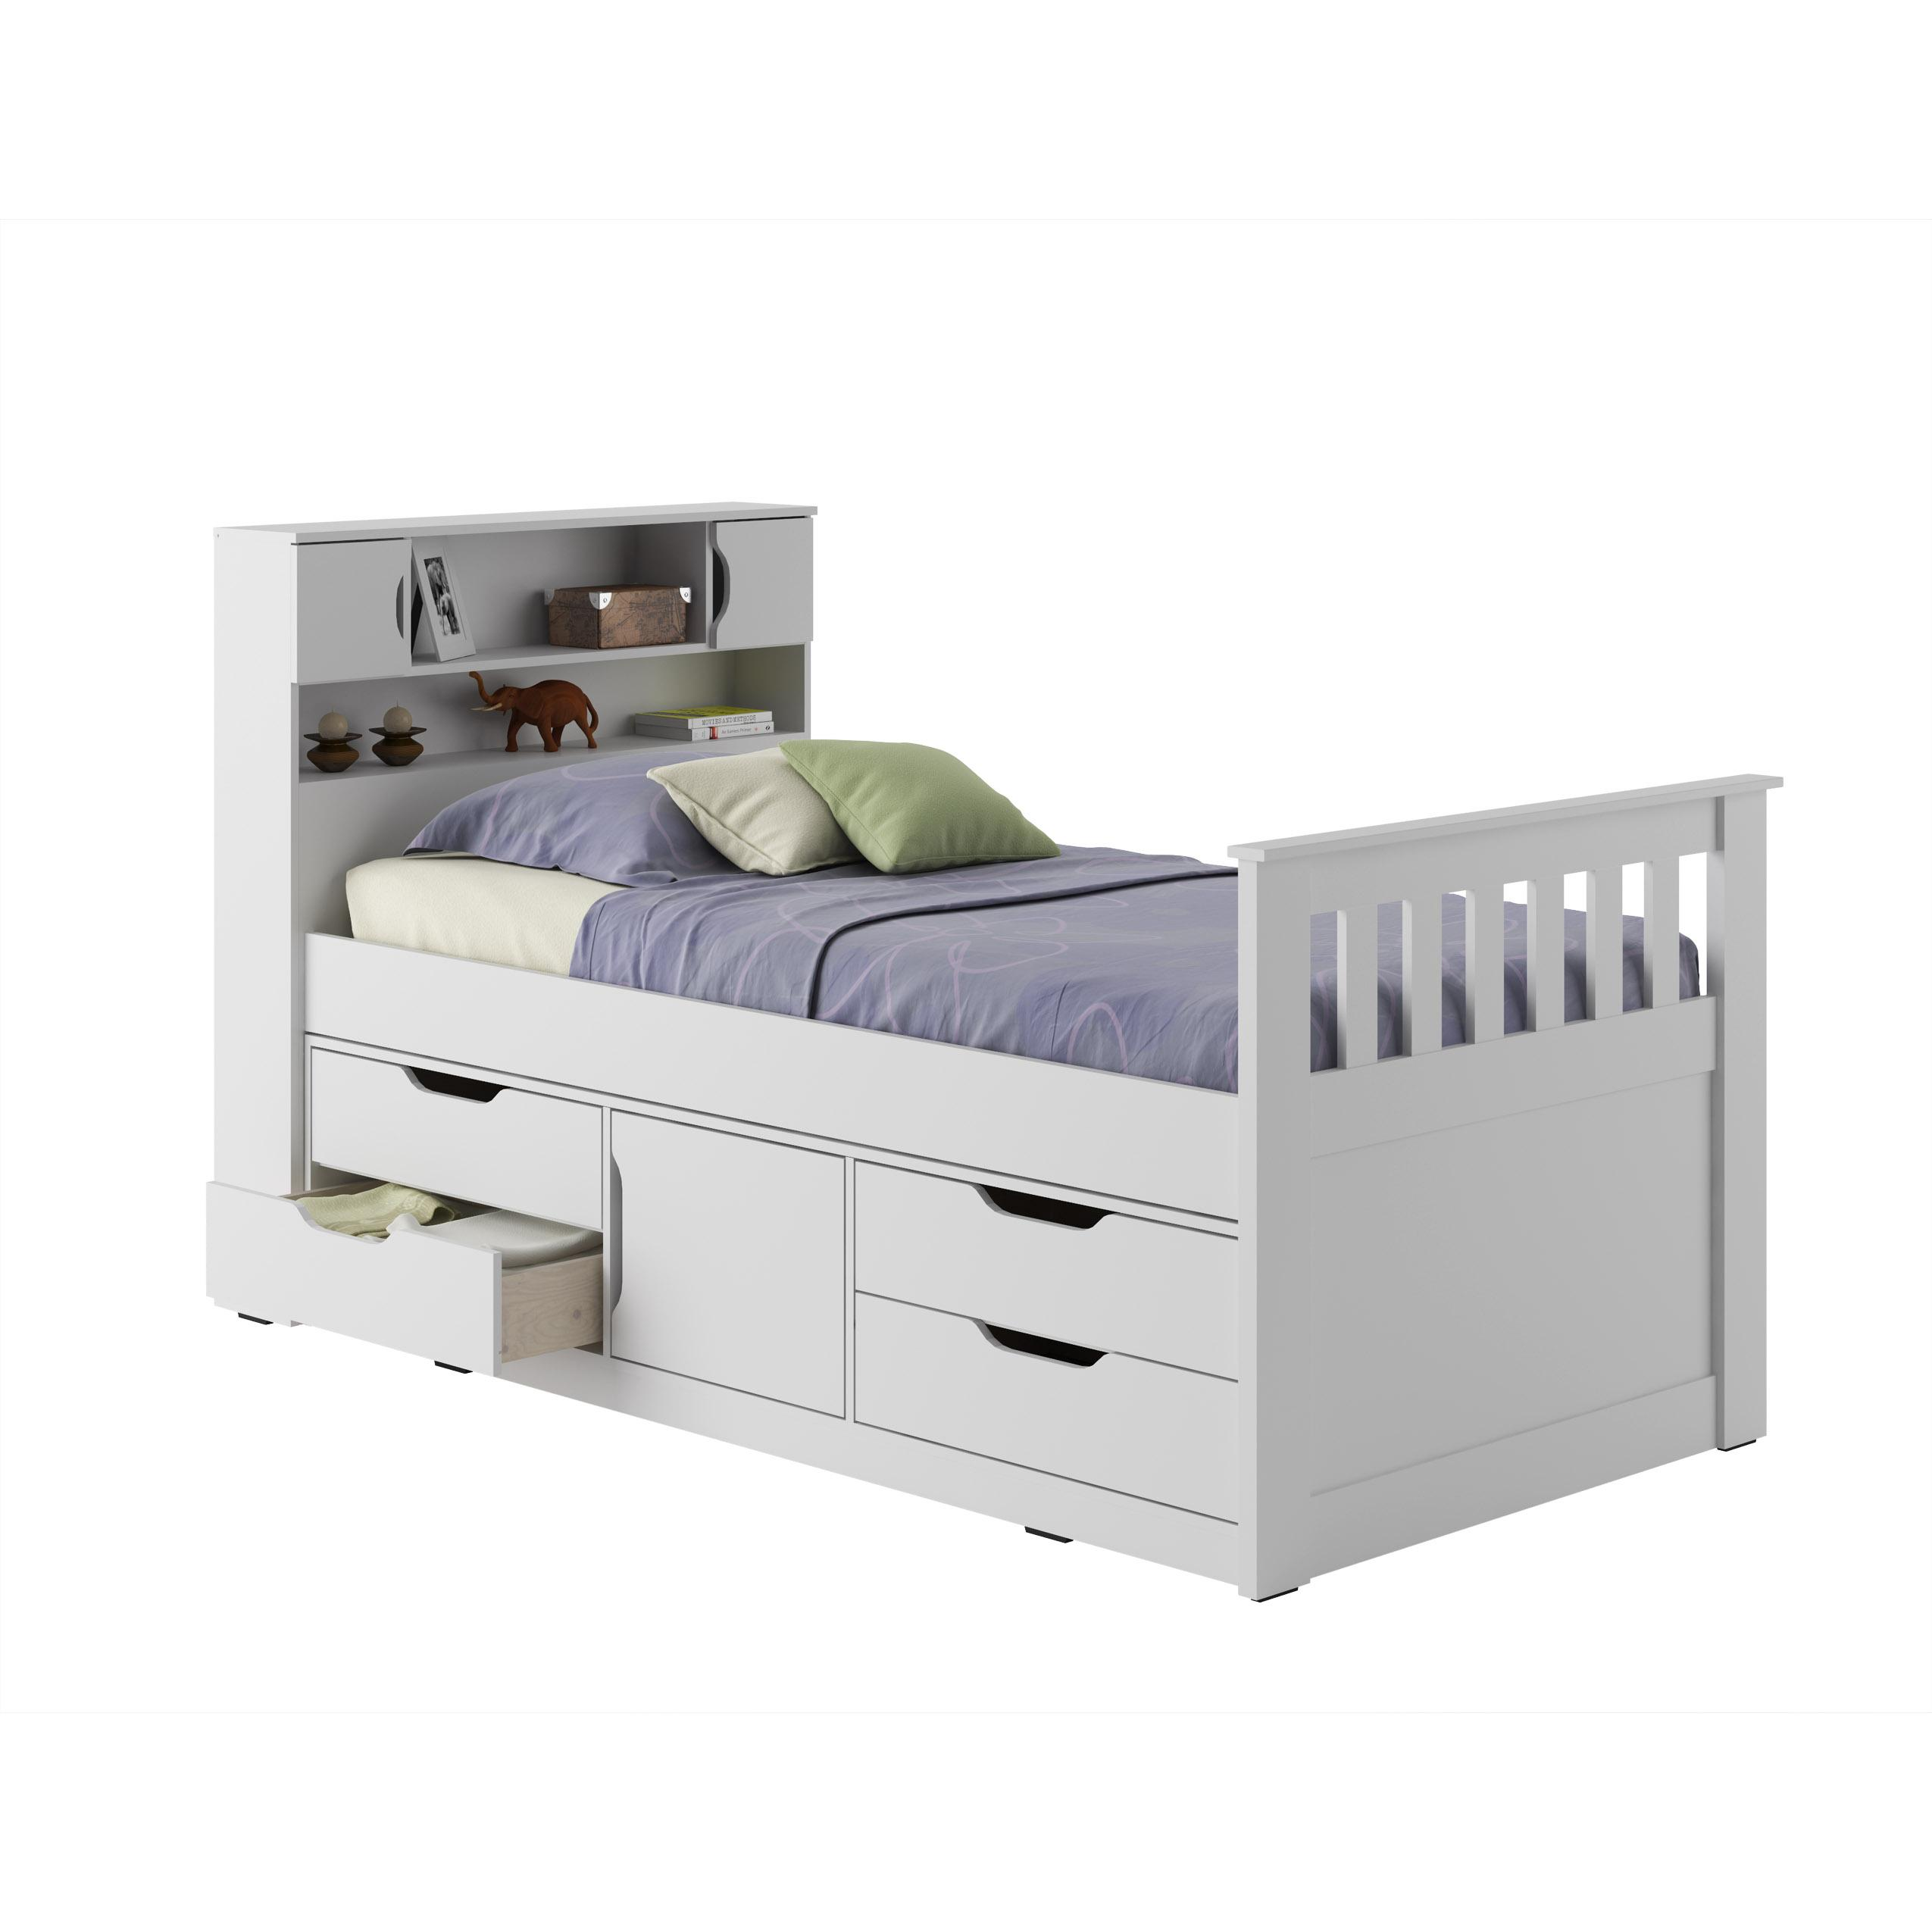 Details About White 3 Piece Storage Drawers Twin Bed Box: Amazon.com: CorLiving BMG-110-B Madison Bed, Twin/Single